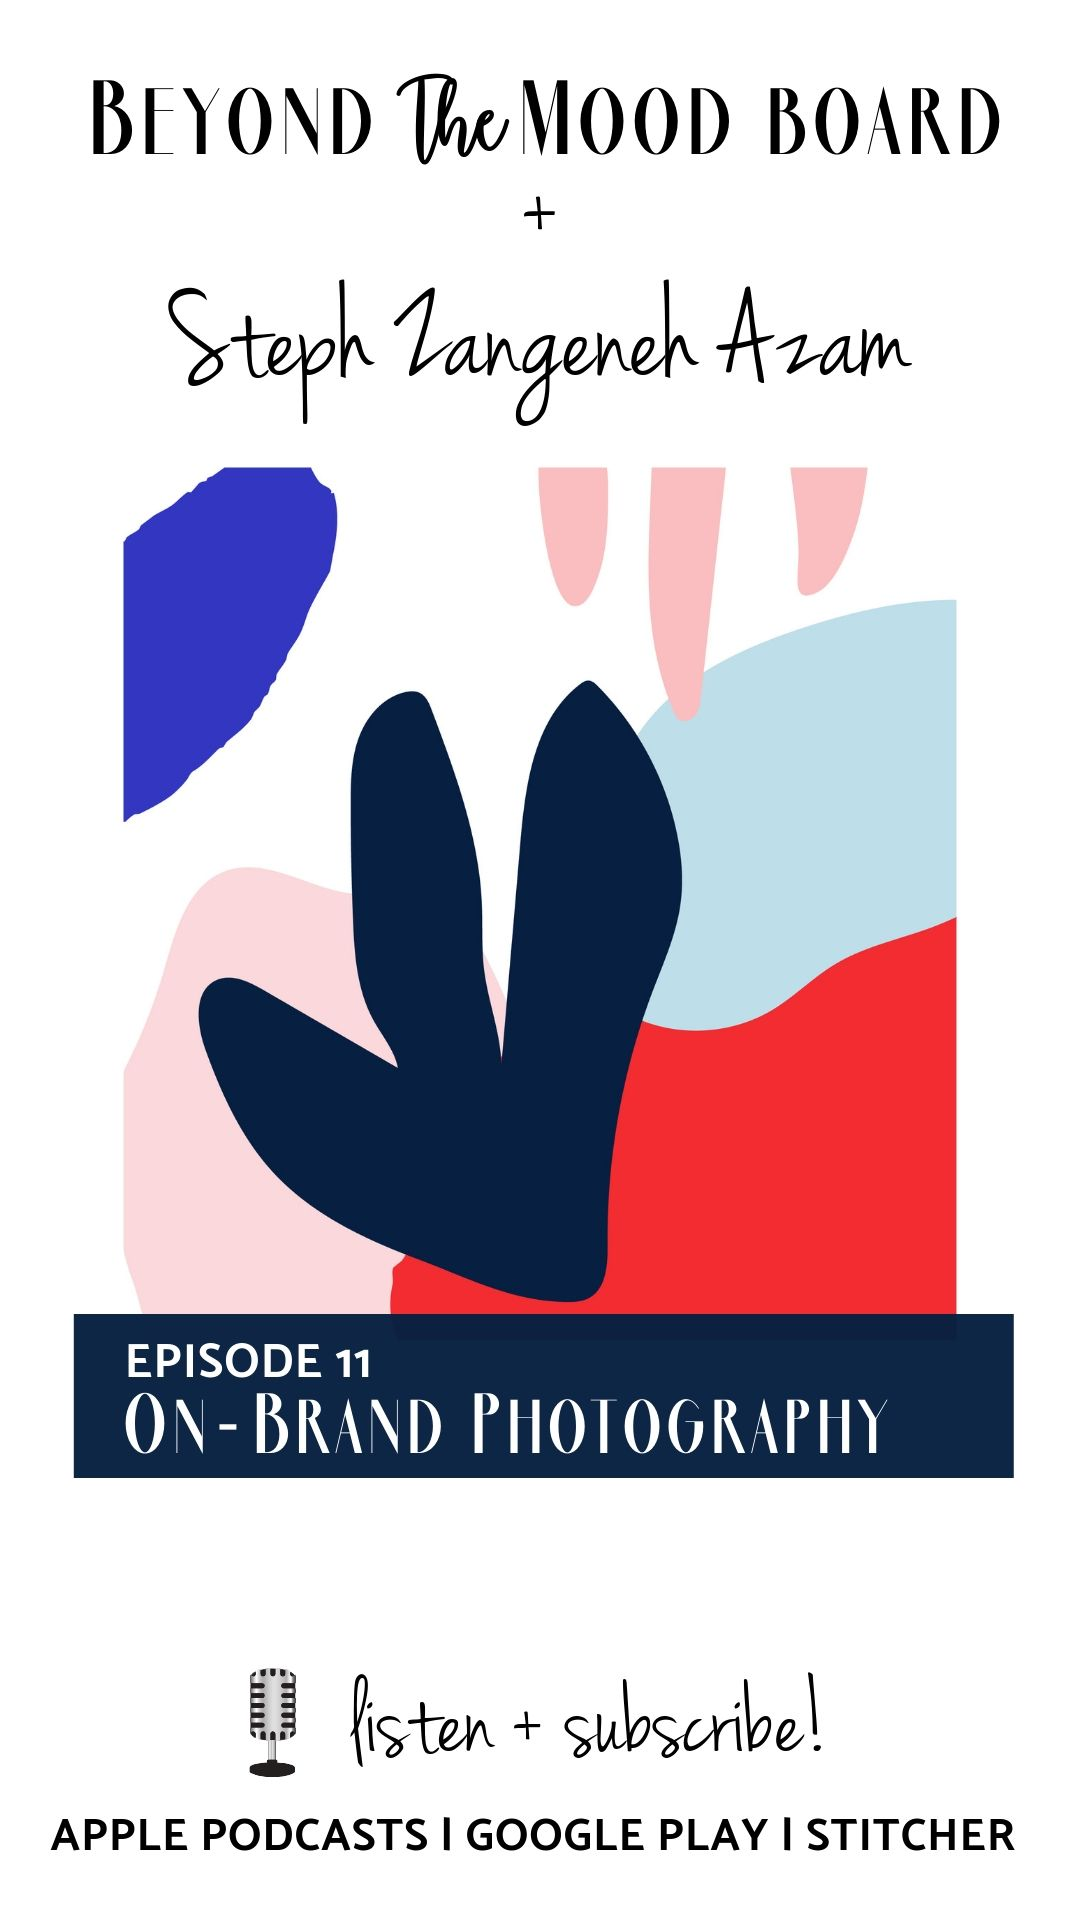 Don't miss this week's podcast episode all about how to have a successful brand photoshoot! Click to listen! | Beyond the Mood Board podcast | #brandphotoshootideas #brandphotoshootinspiration #brandphotographyinspiration #brandphotographyideas